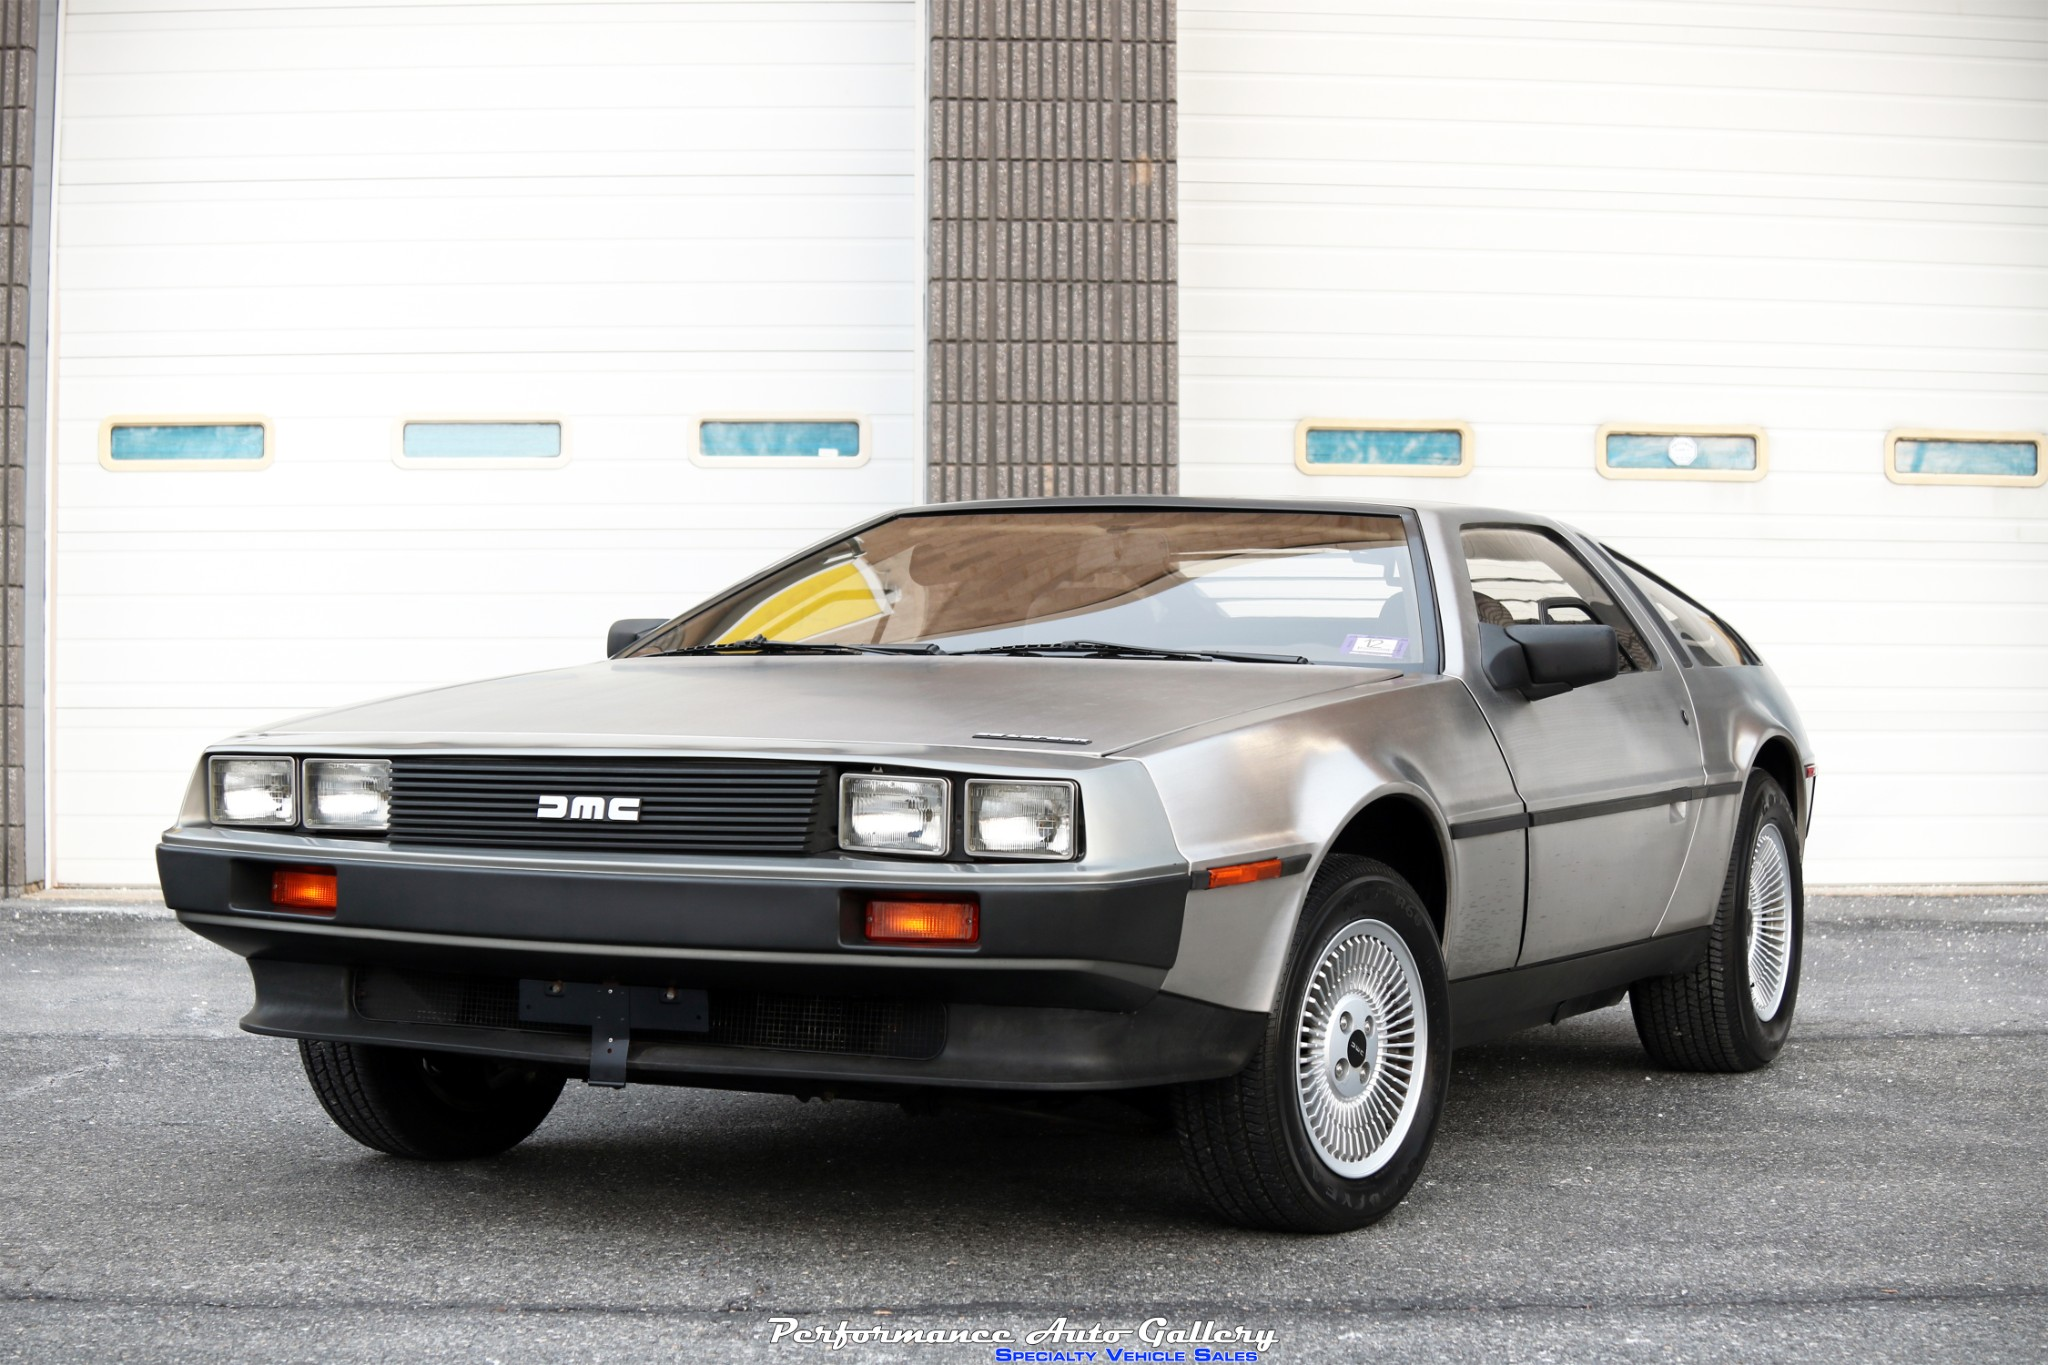 Preview DeLorean DMC-12